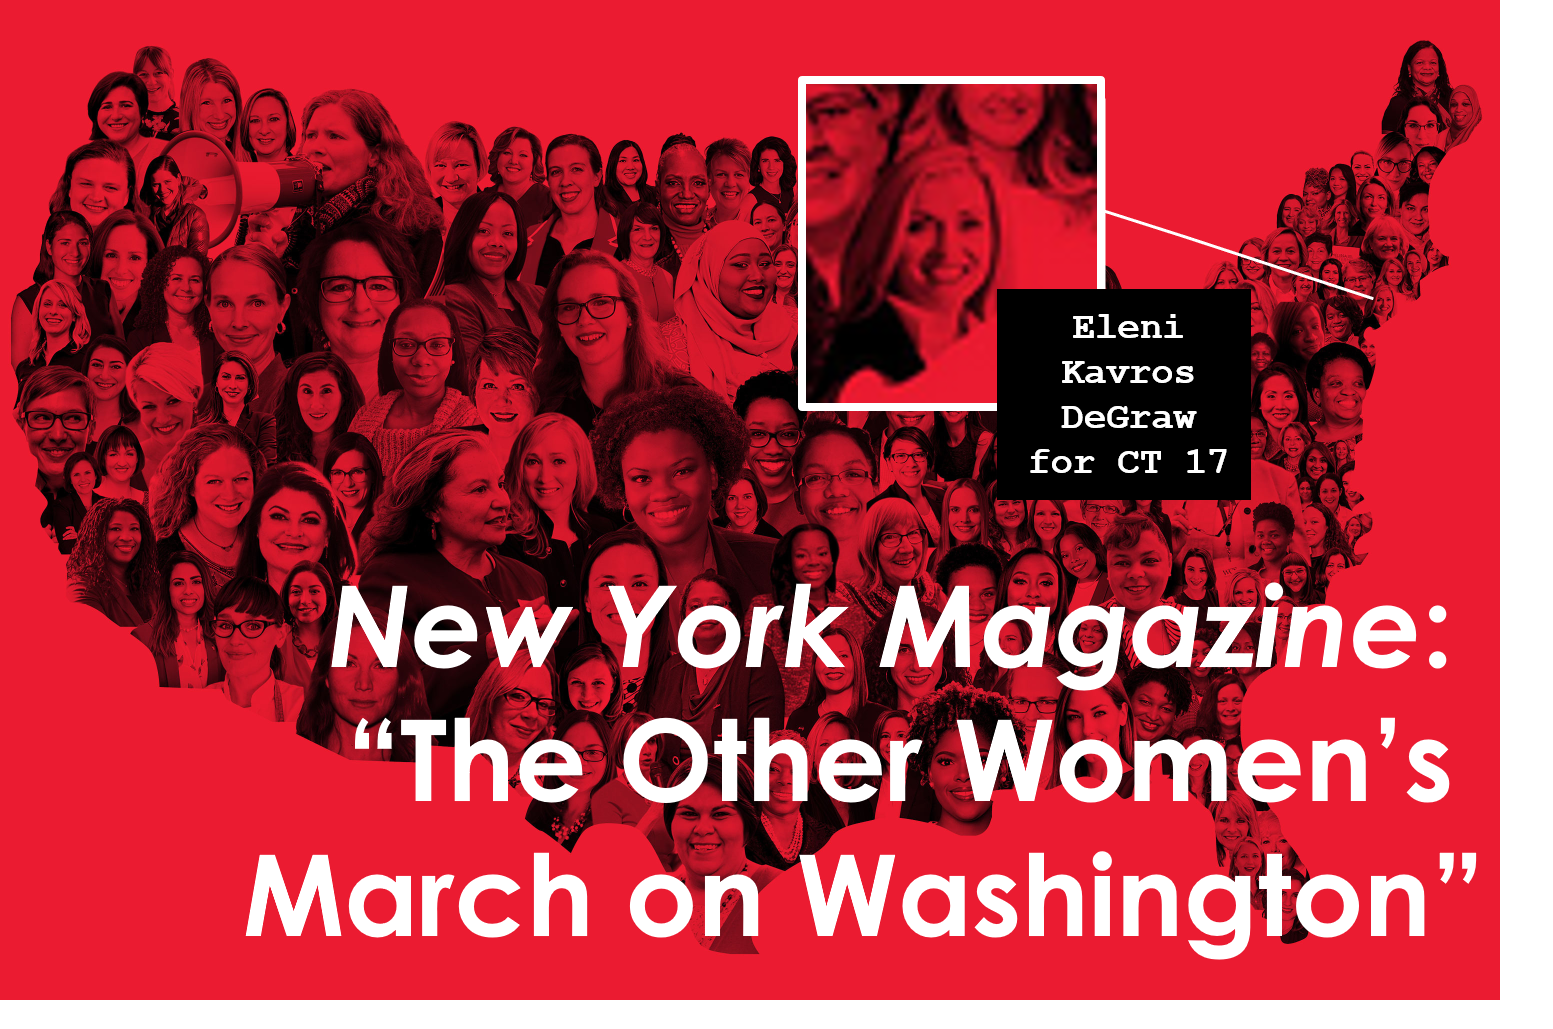 New York Magazine: The Other Women's March on Washington -